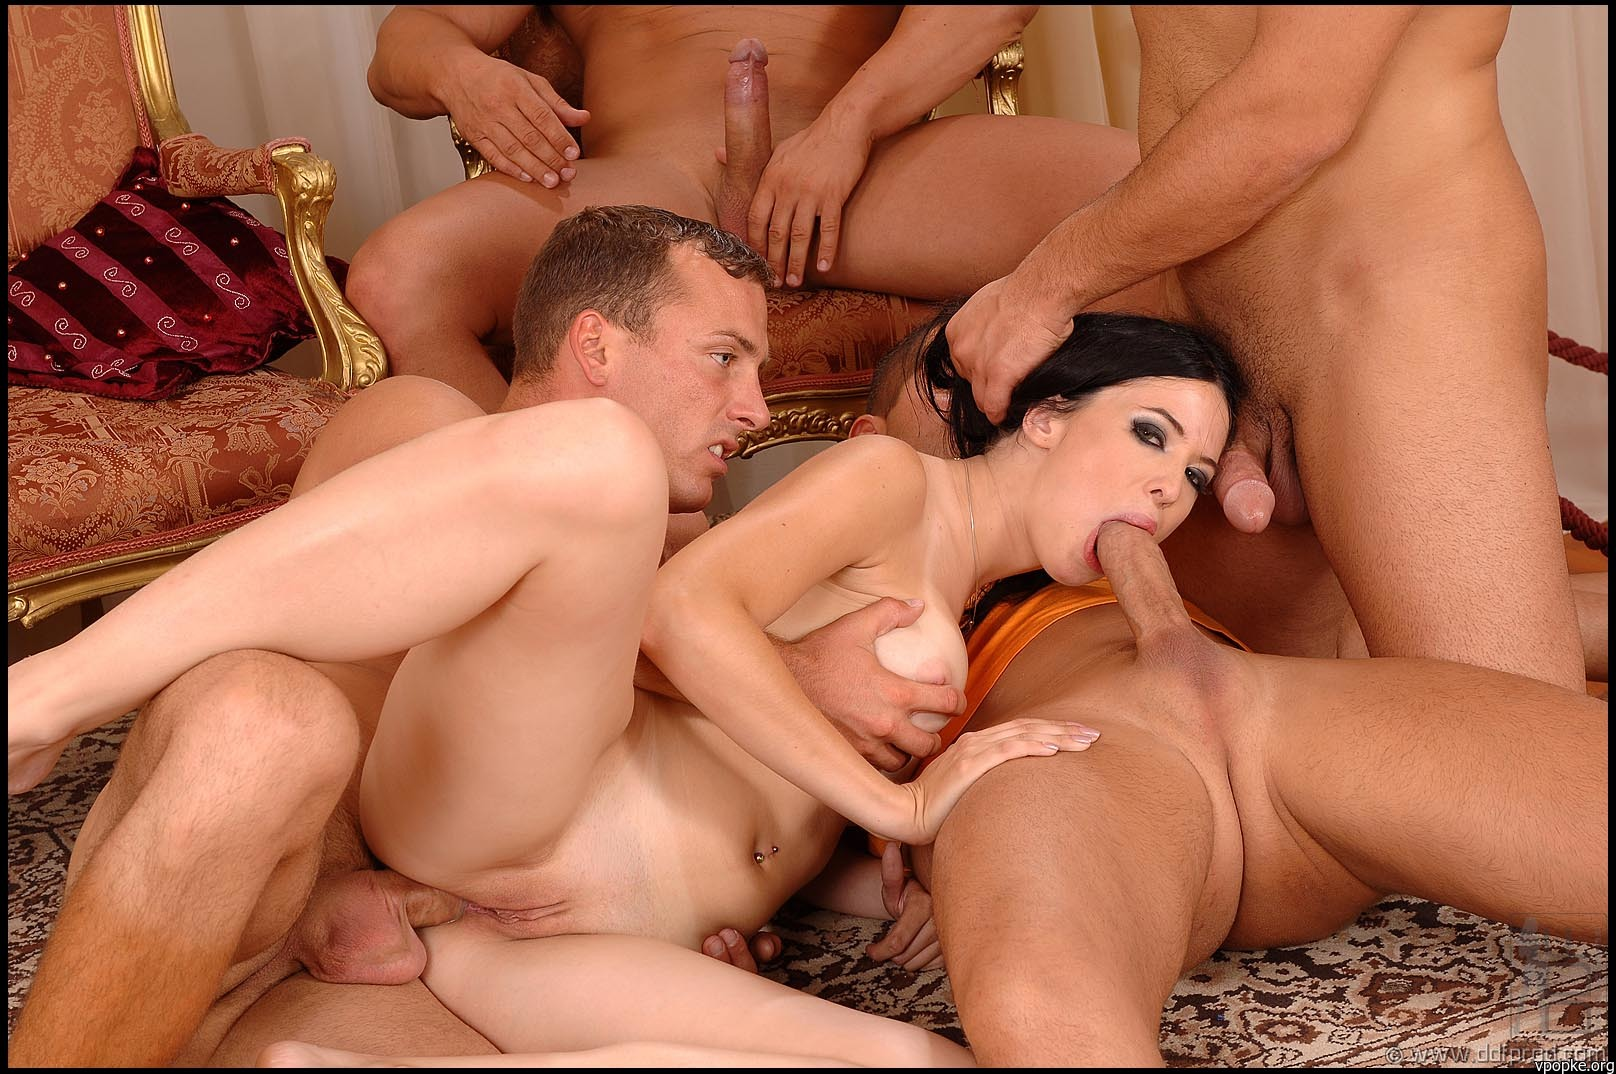 porno-video-ochen-gruppovoe-porno